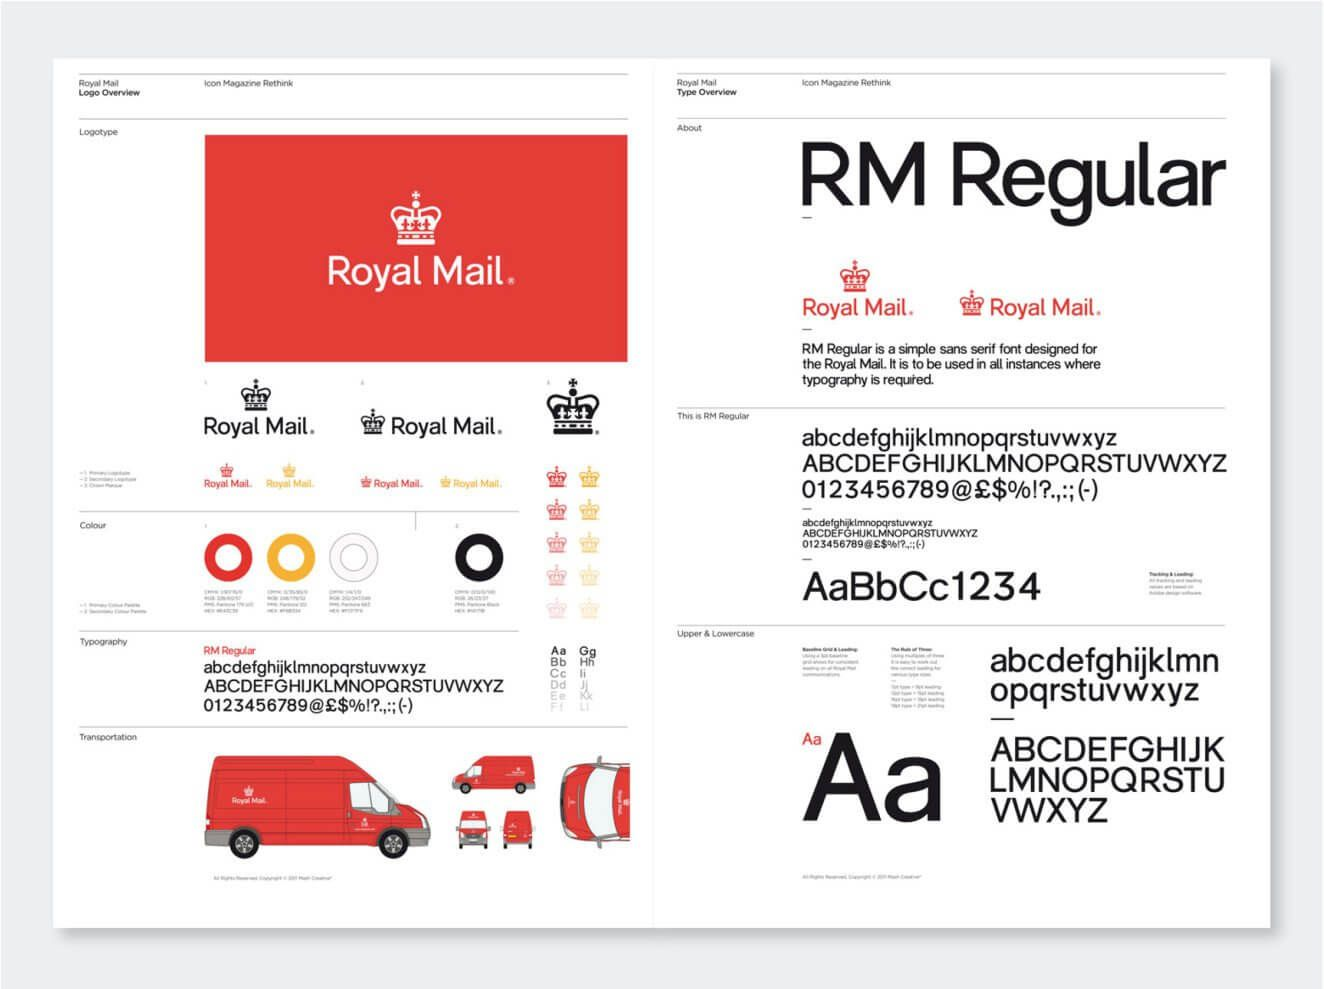 30 Great Examples Of Brand And Style Guides Inspirationfeed Brand Style Guide Brand Guidelines Template Style Guide Design